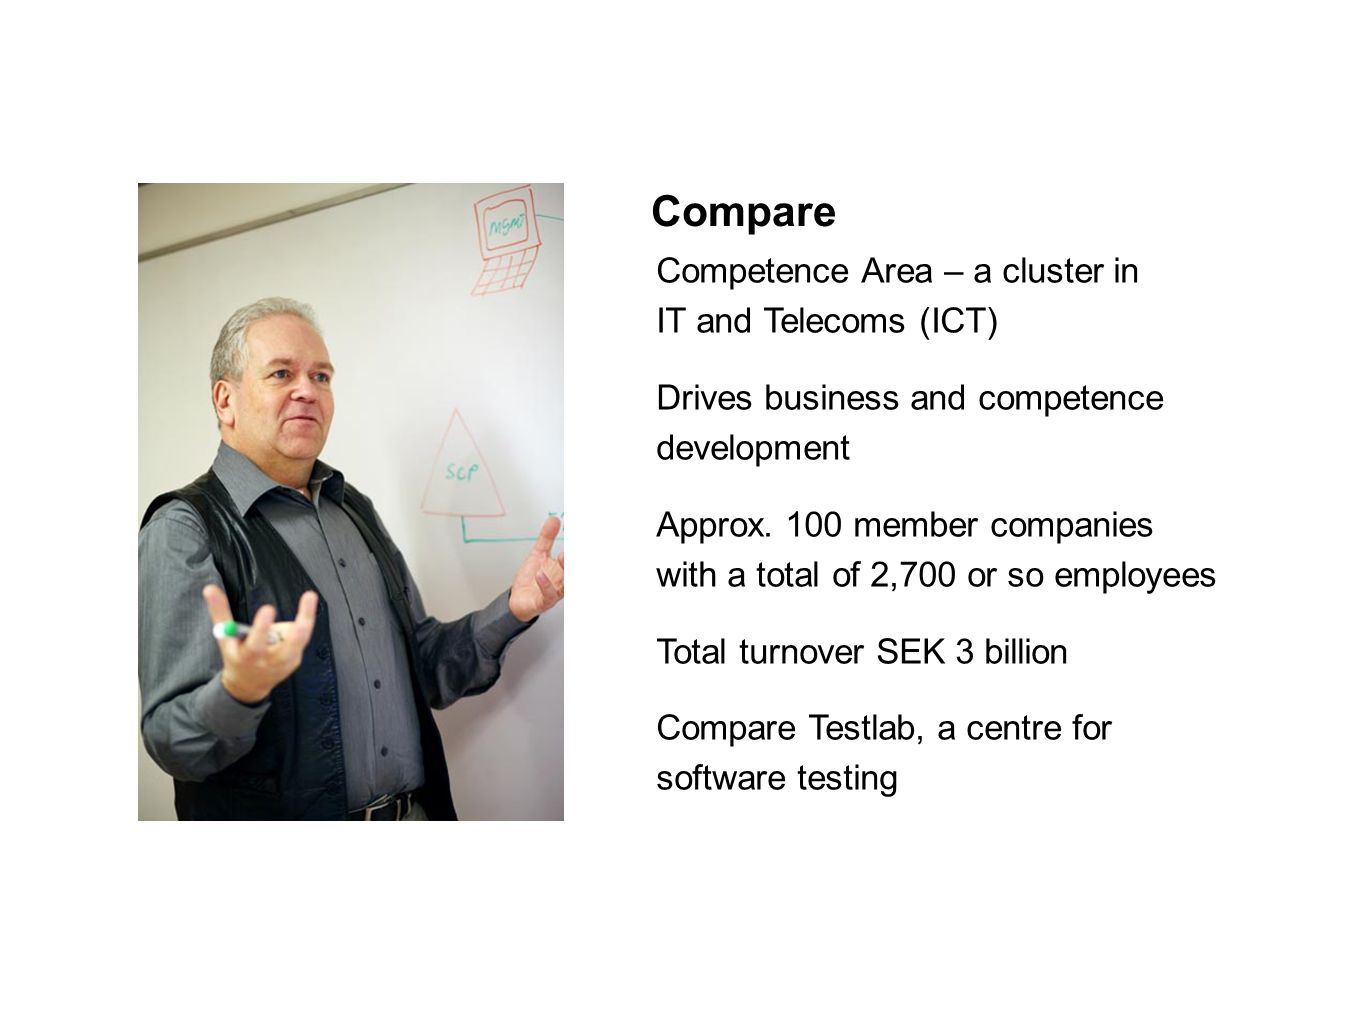 Compare Competence Area – a cluster in IT and Telecoms (ICT)